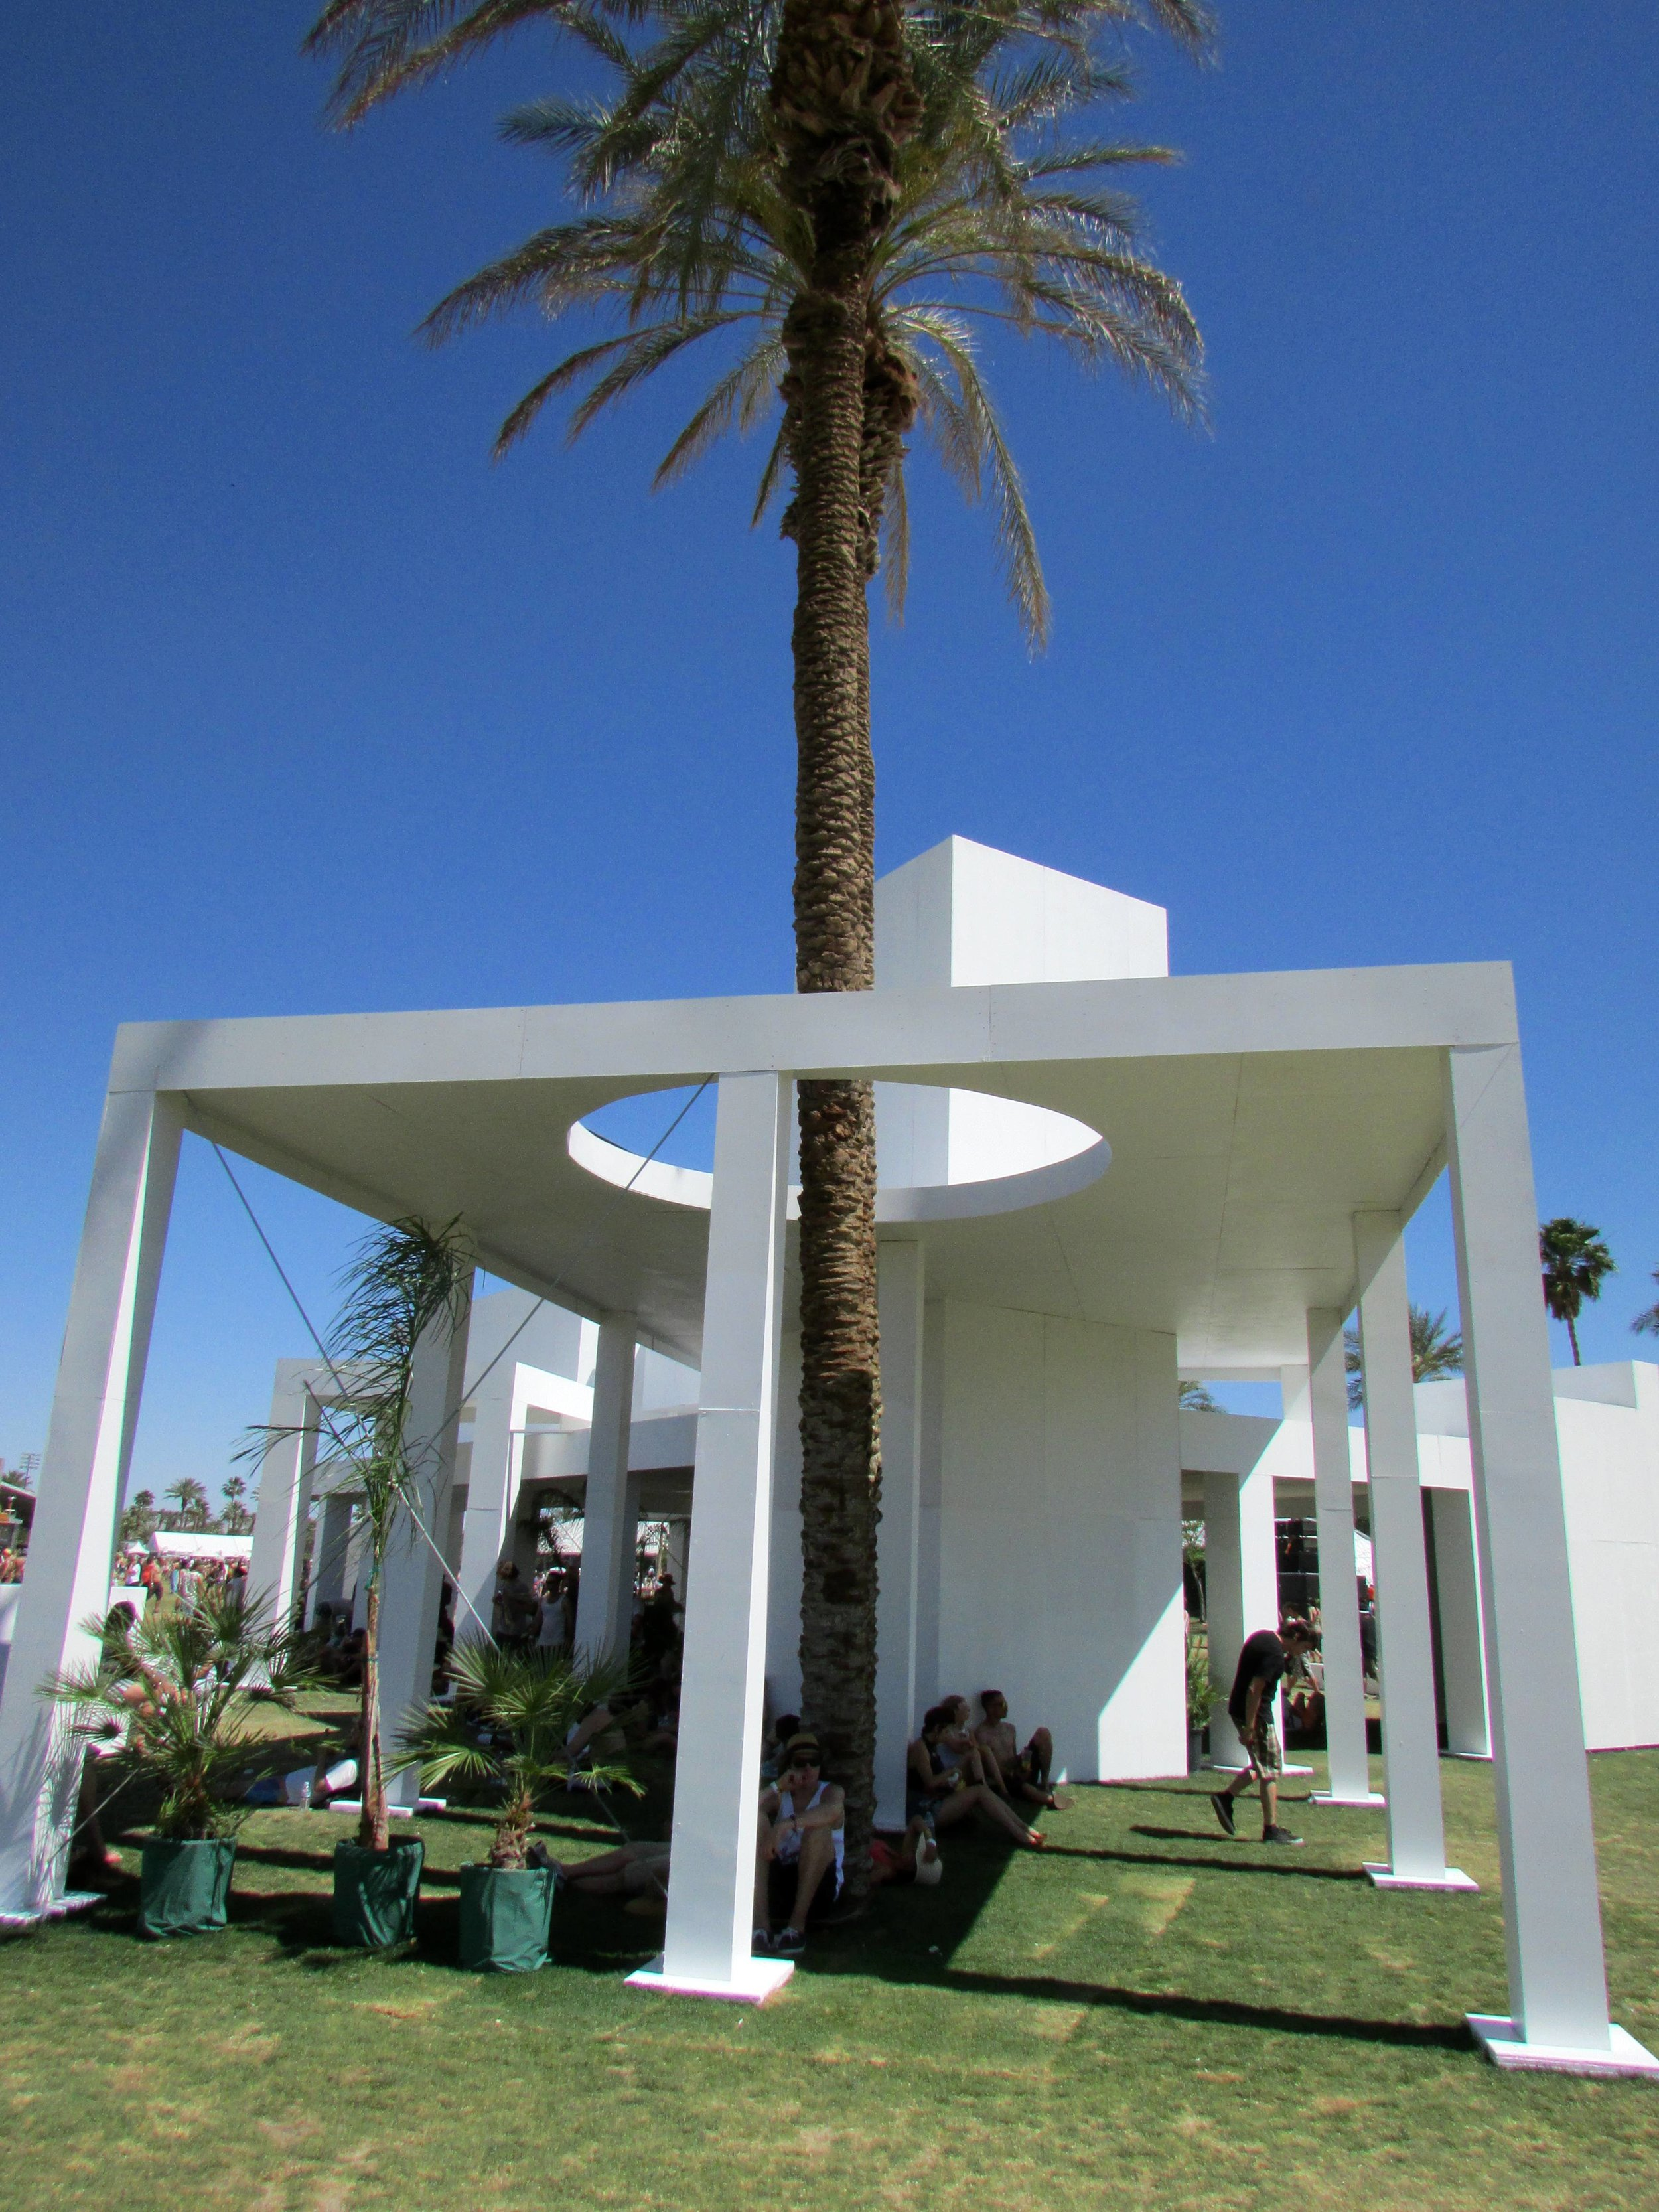 9 - The stately 'Mirage' sculpture, envoking the modernist archiectural style of mid-21st century Palms Springs homes.JPG